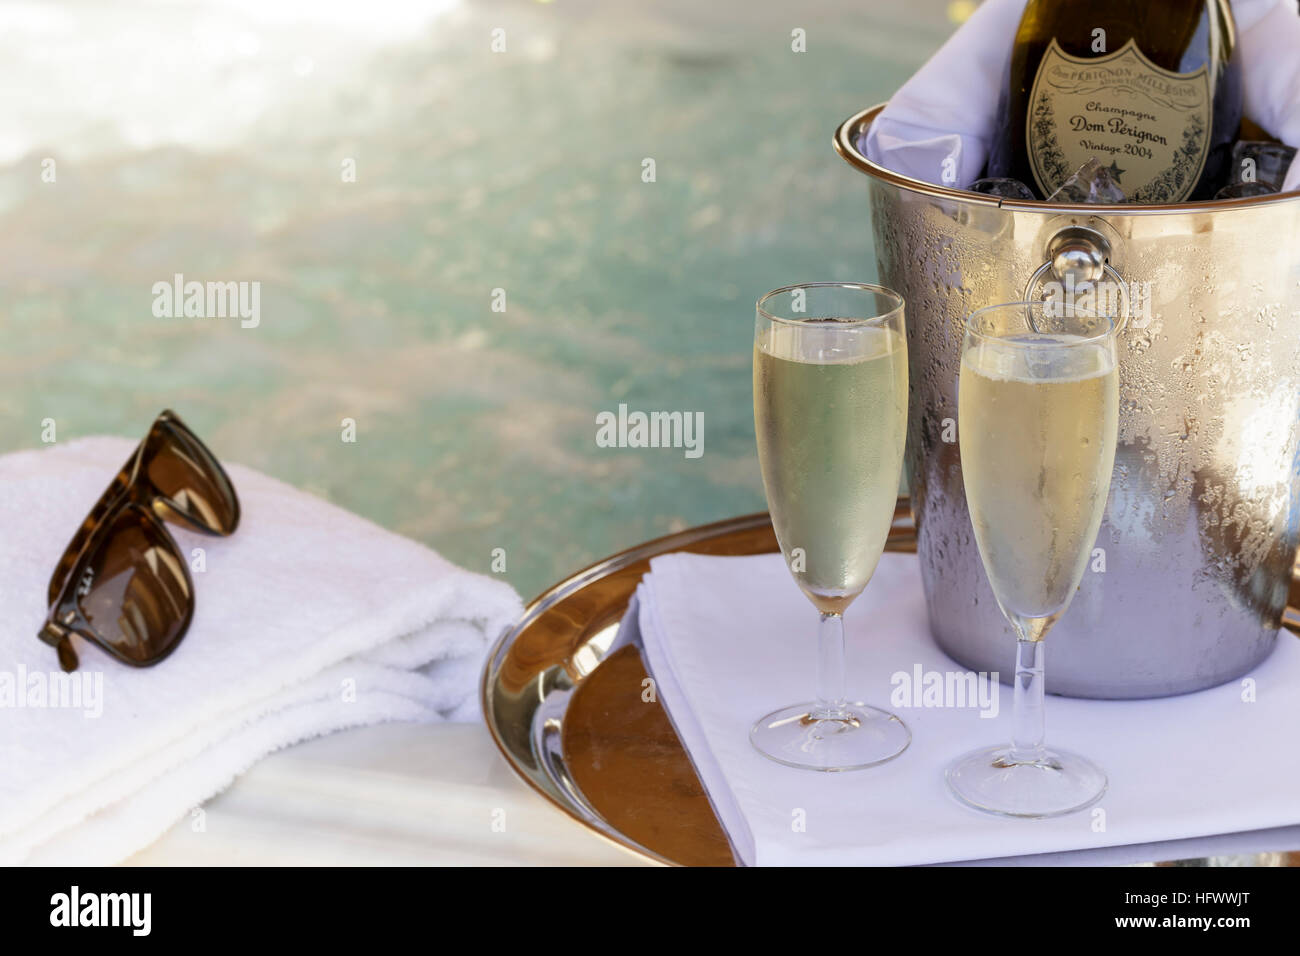 Champagne bottle and flutes with jacuzzi behind - Stock Image